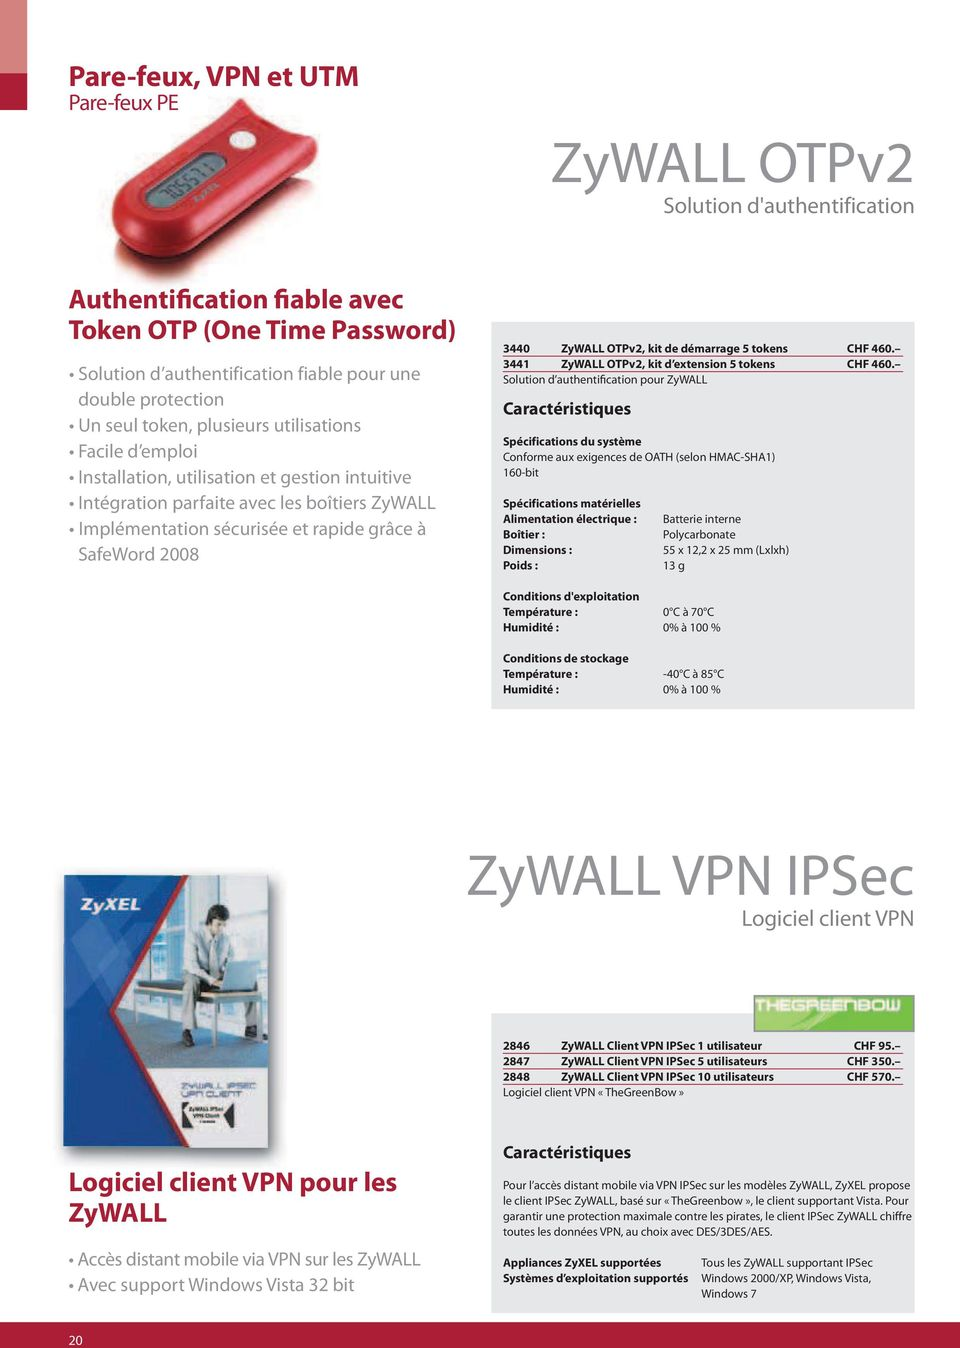 2008 3440 ZyWALL OTPv2, kit de démarrage 5 tokens CHF 460. 3441 ZyWALL OTPv2, kit d extension 5 tokens CHF 460.